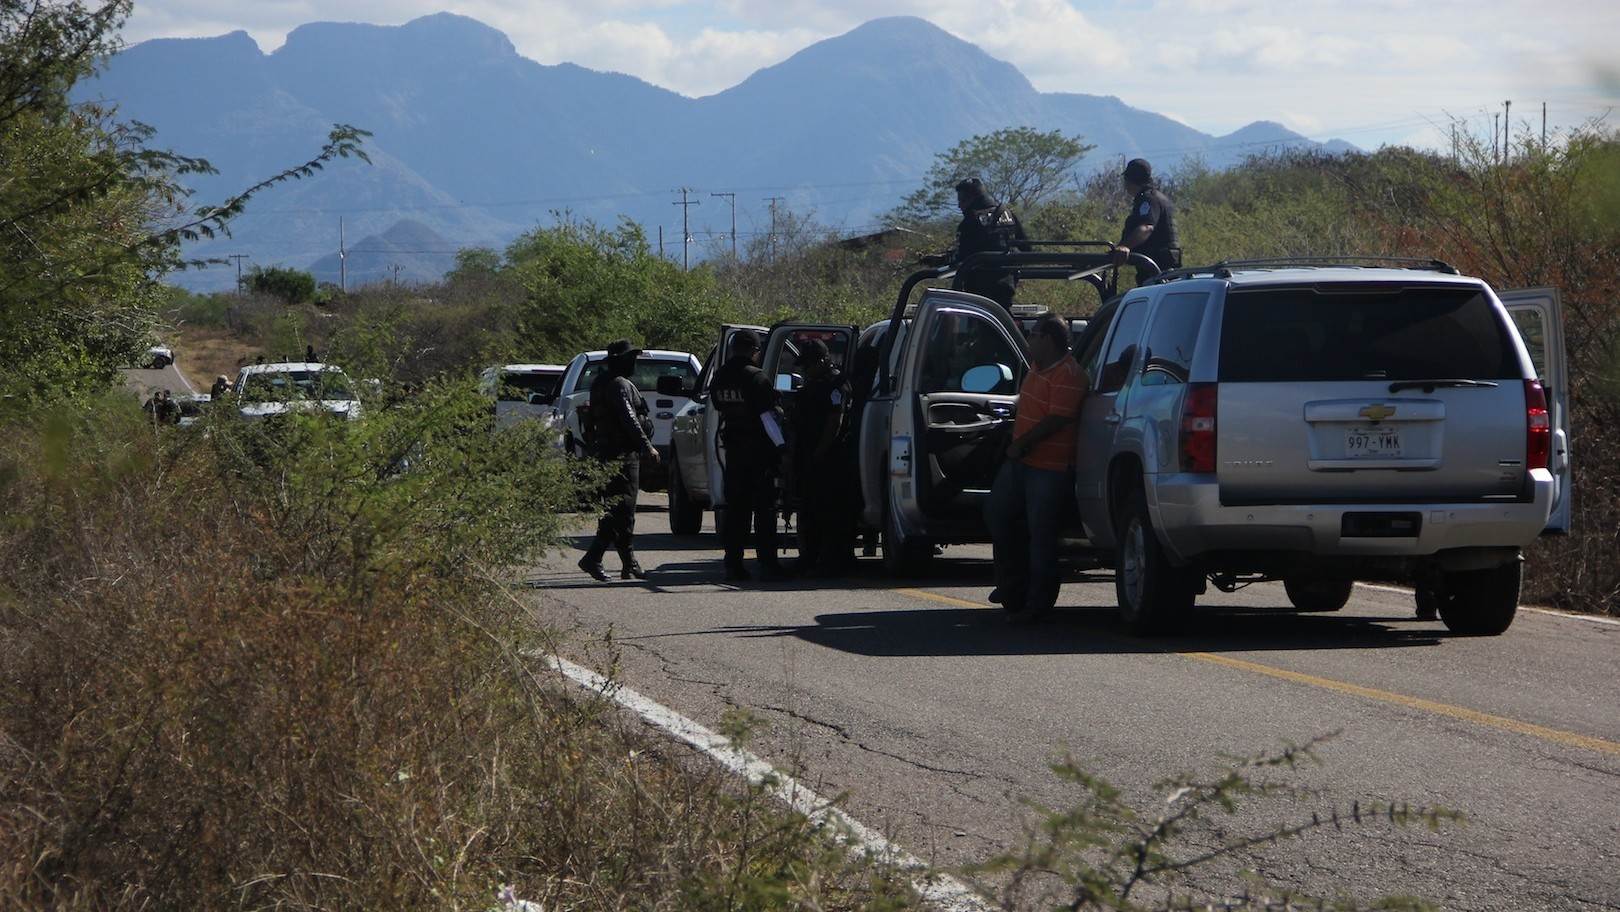 Two Mass Kidnappings in Mexico's Most Violent State End With the Victims Being Released